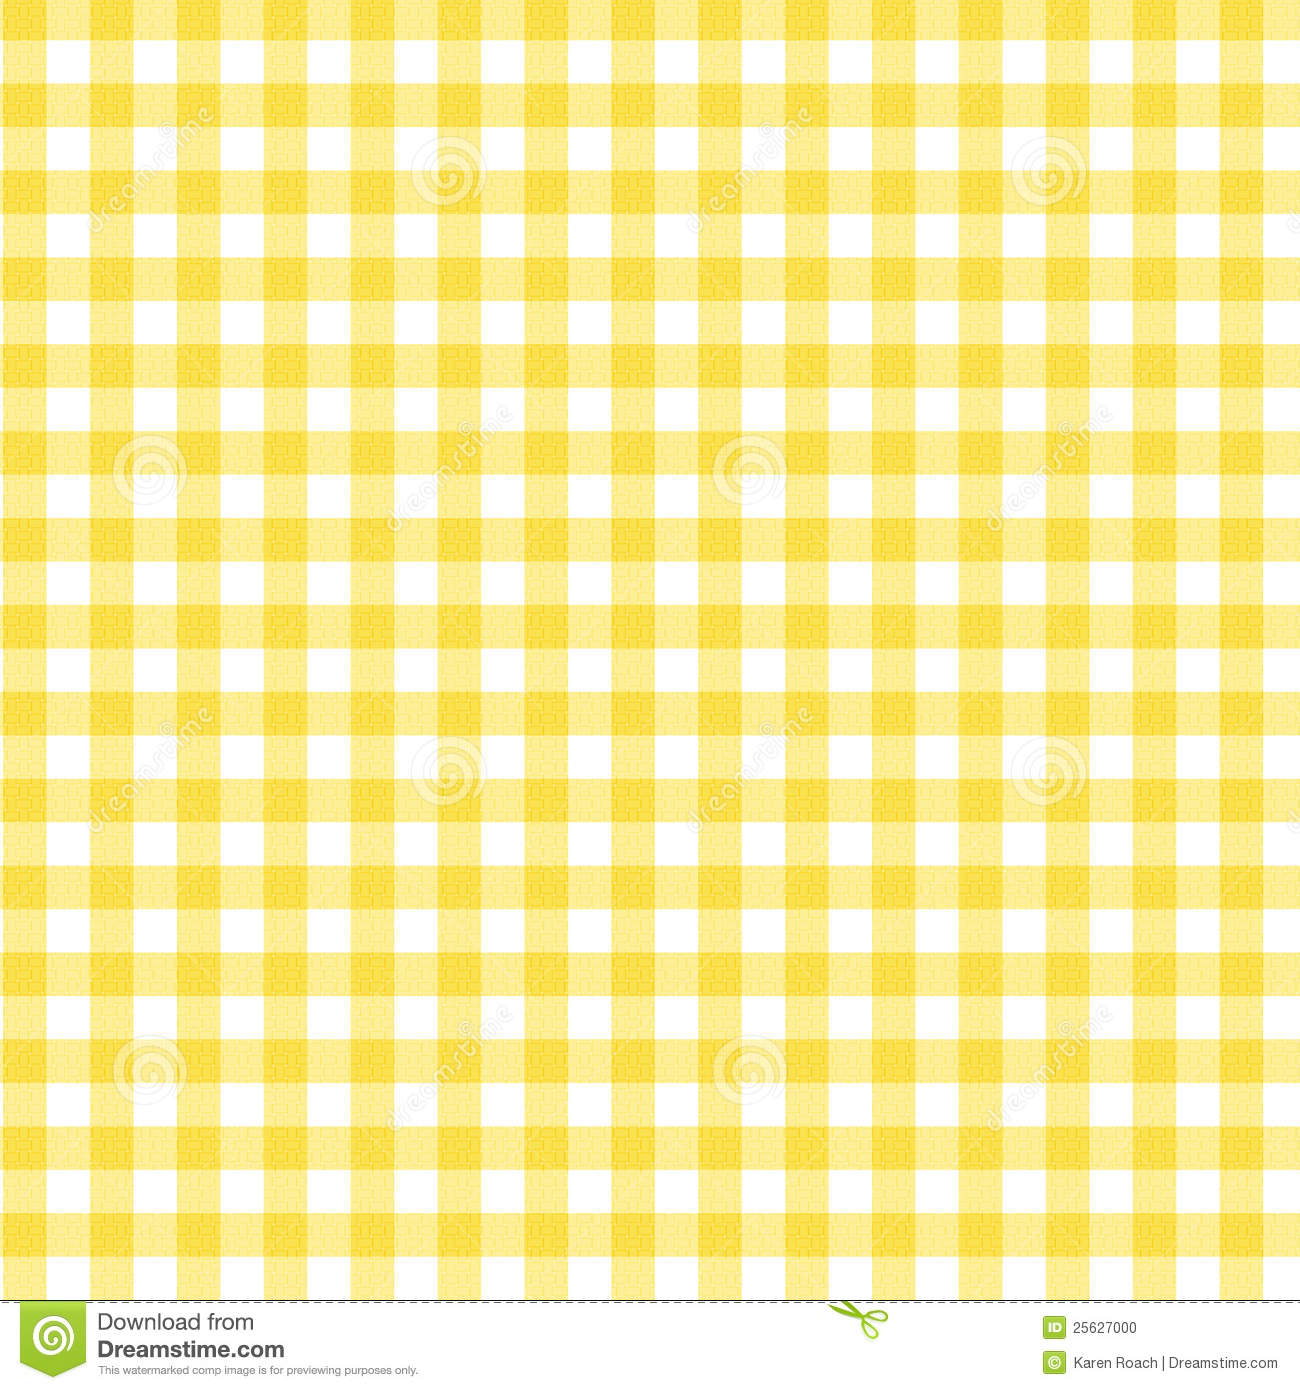 363454632399258081 furthermore Geometric 90s Wall Mural together with MACBUPtRKsE Green Plants Floral Watercolor Motivational Desktop Wallpaper moreover Hd Blue Wallpapers Backgrounds Free Download as well Light Yellow Pocket Square. on pastel yellow background wallpaper